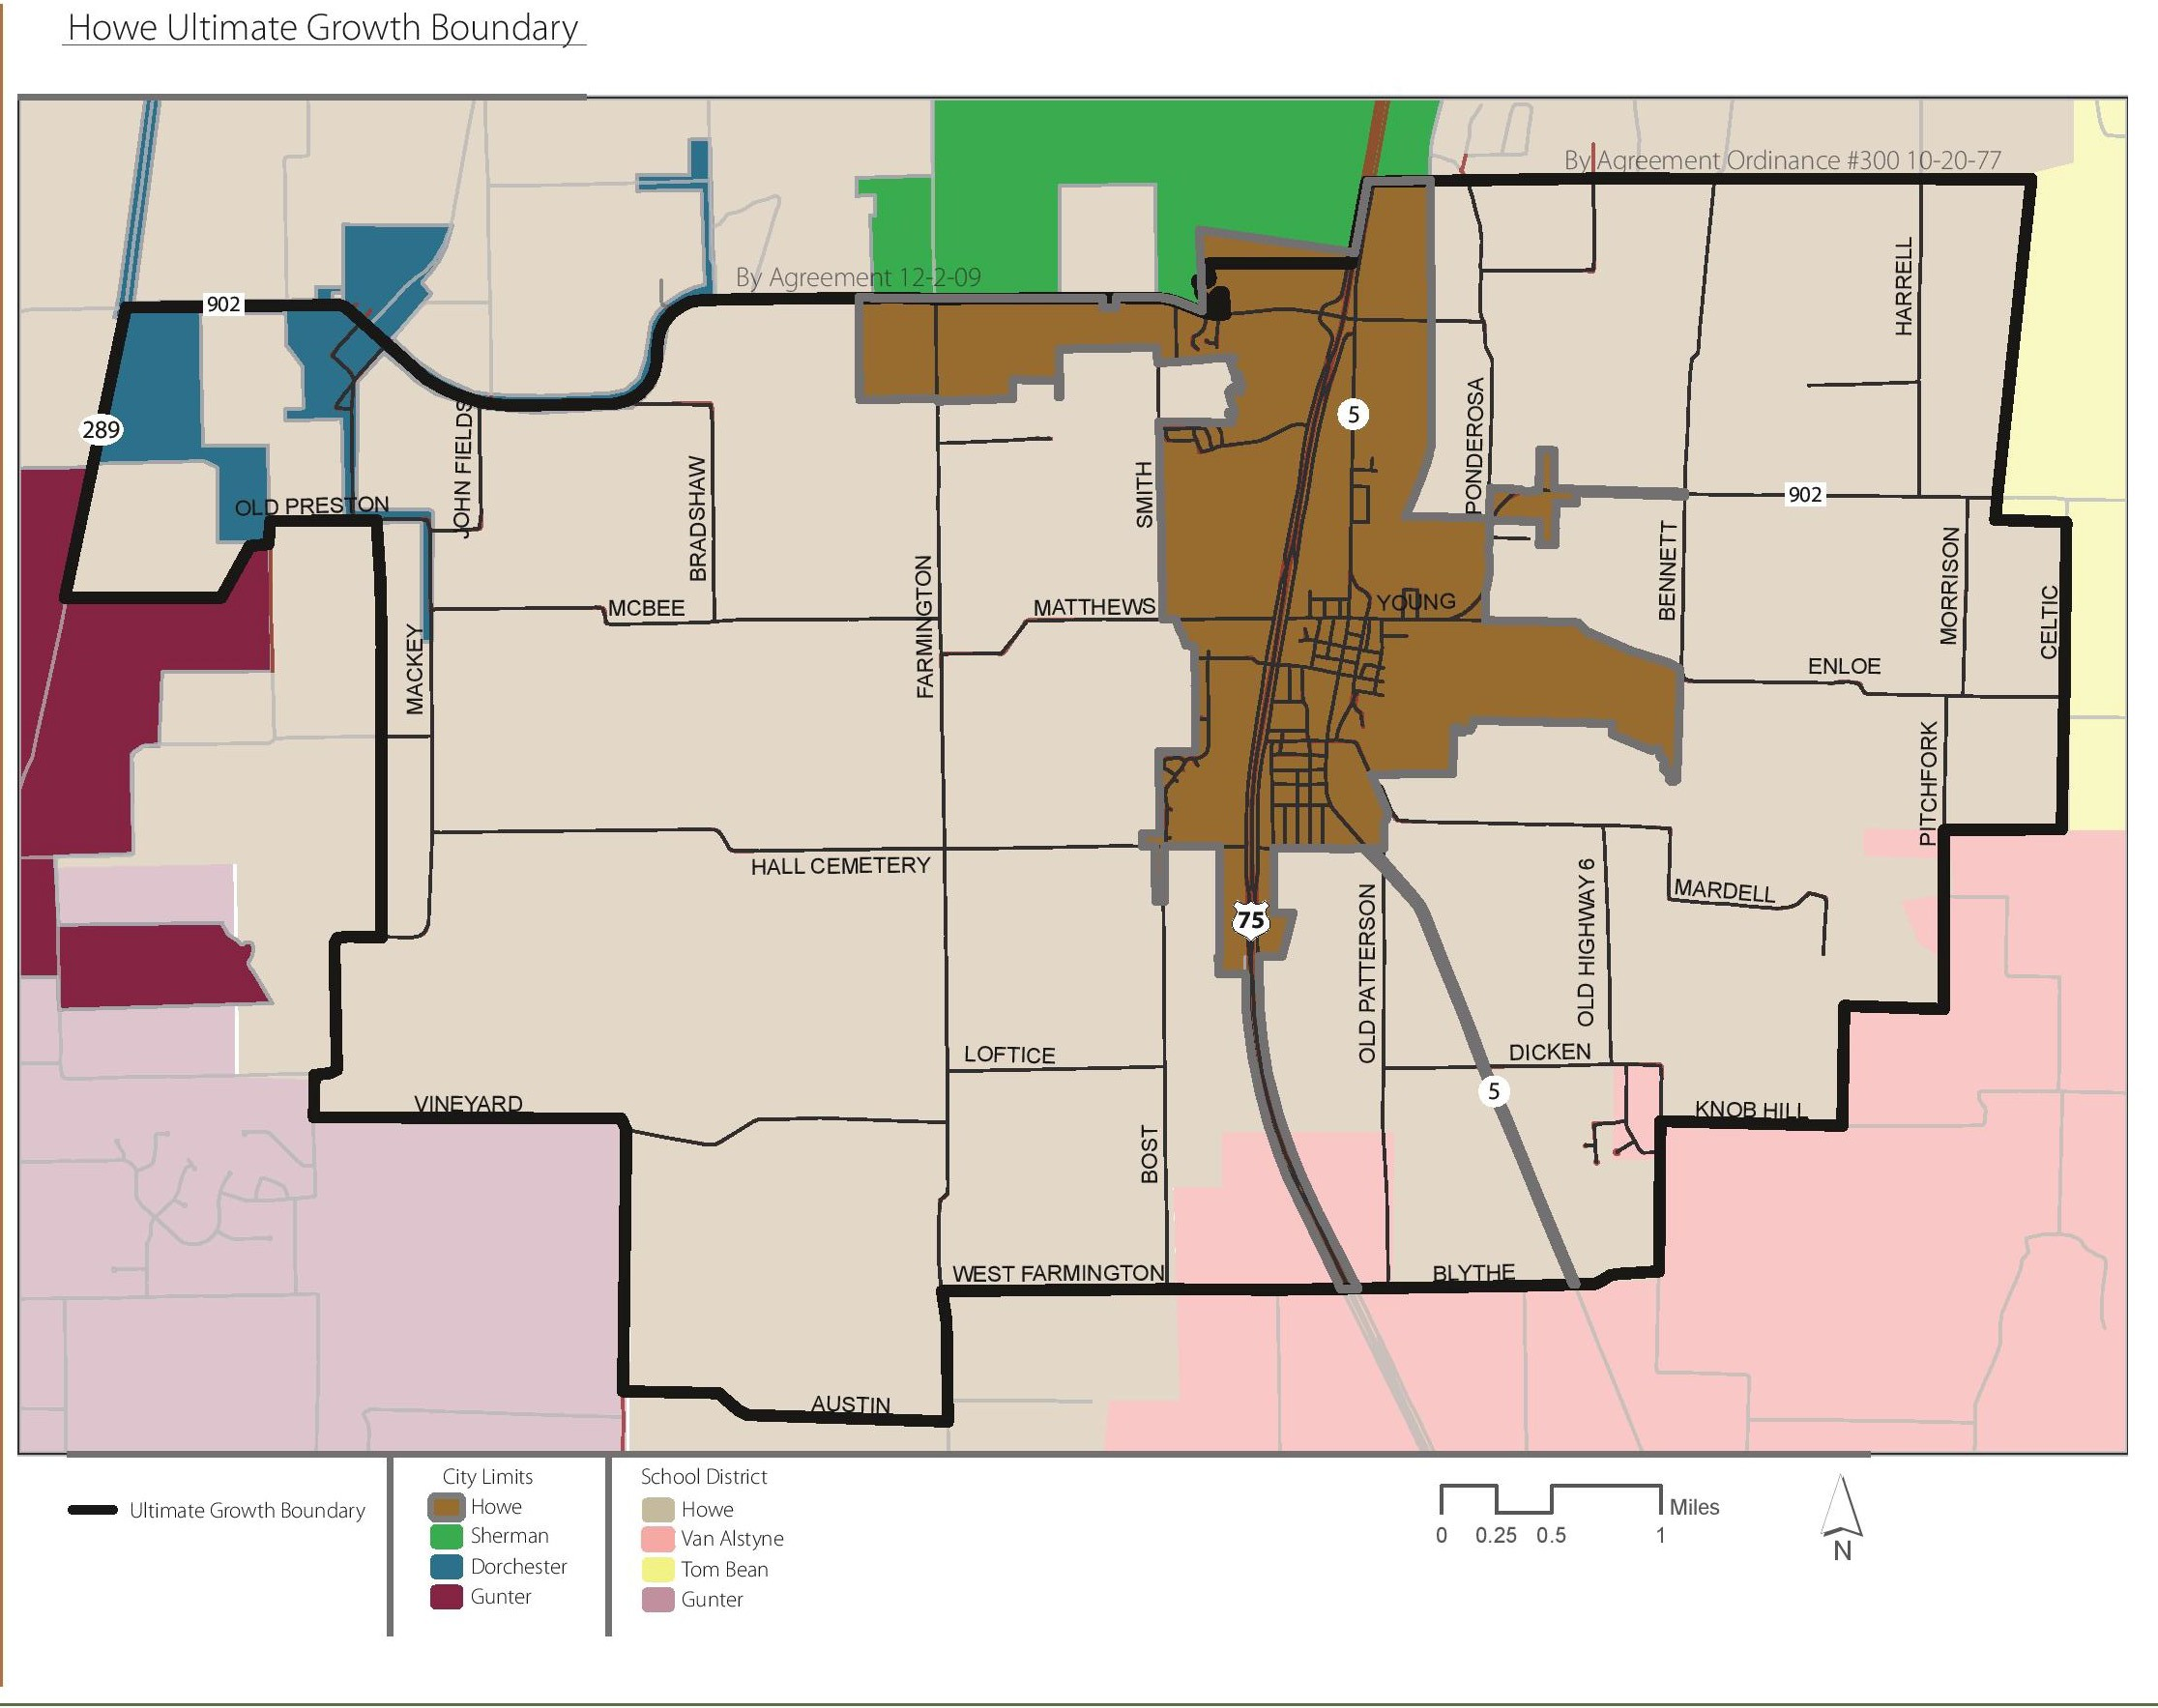 City-of-Howe_Comprehensive_Plan_FINAL_Adopted11-5-10-page-037-e1426299480838